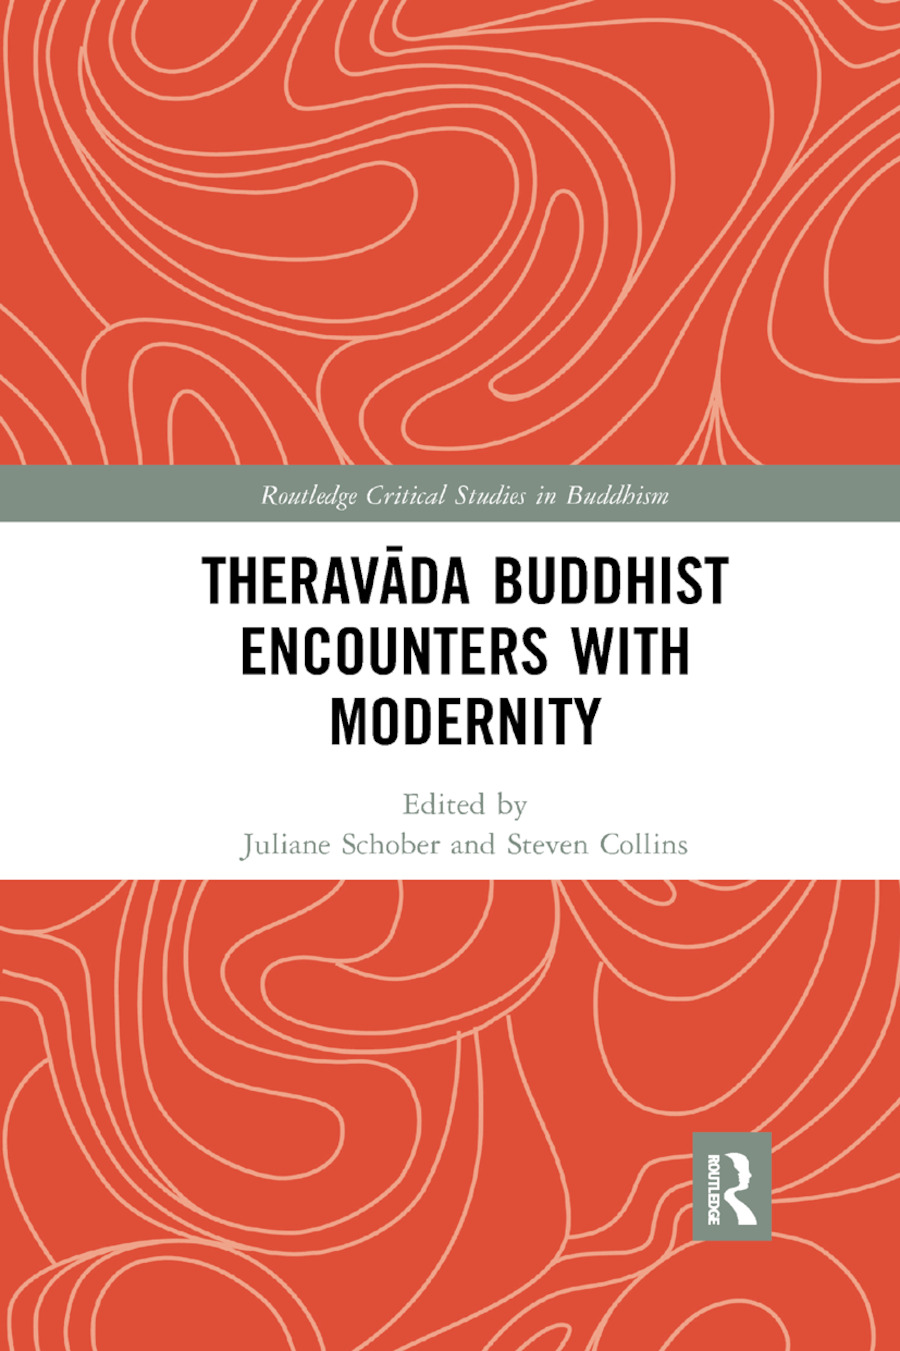 Theravada Buddhist Encounters with Modernity: 1st Edition (Paperback) book cover